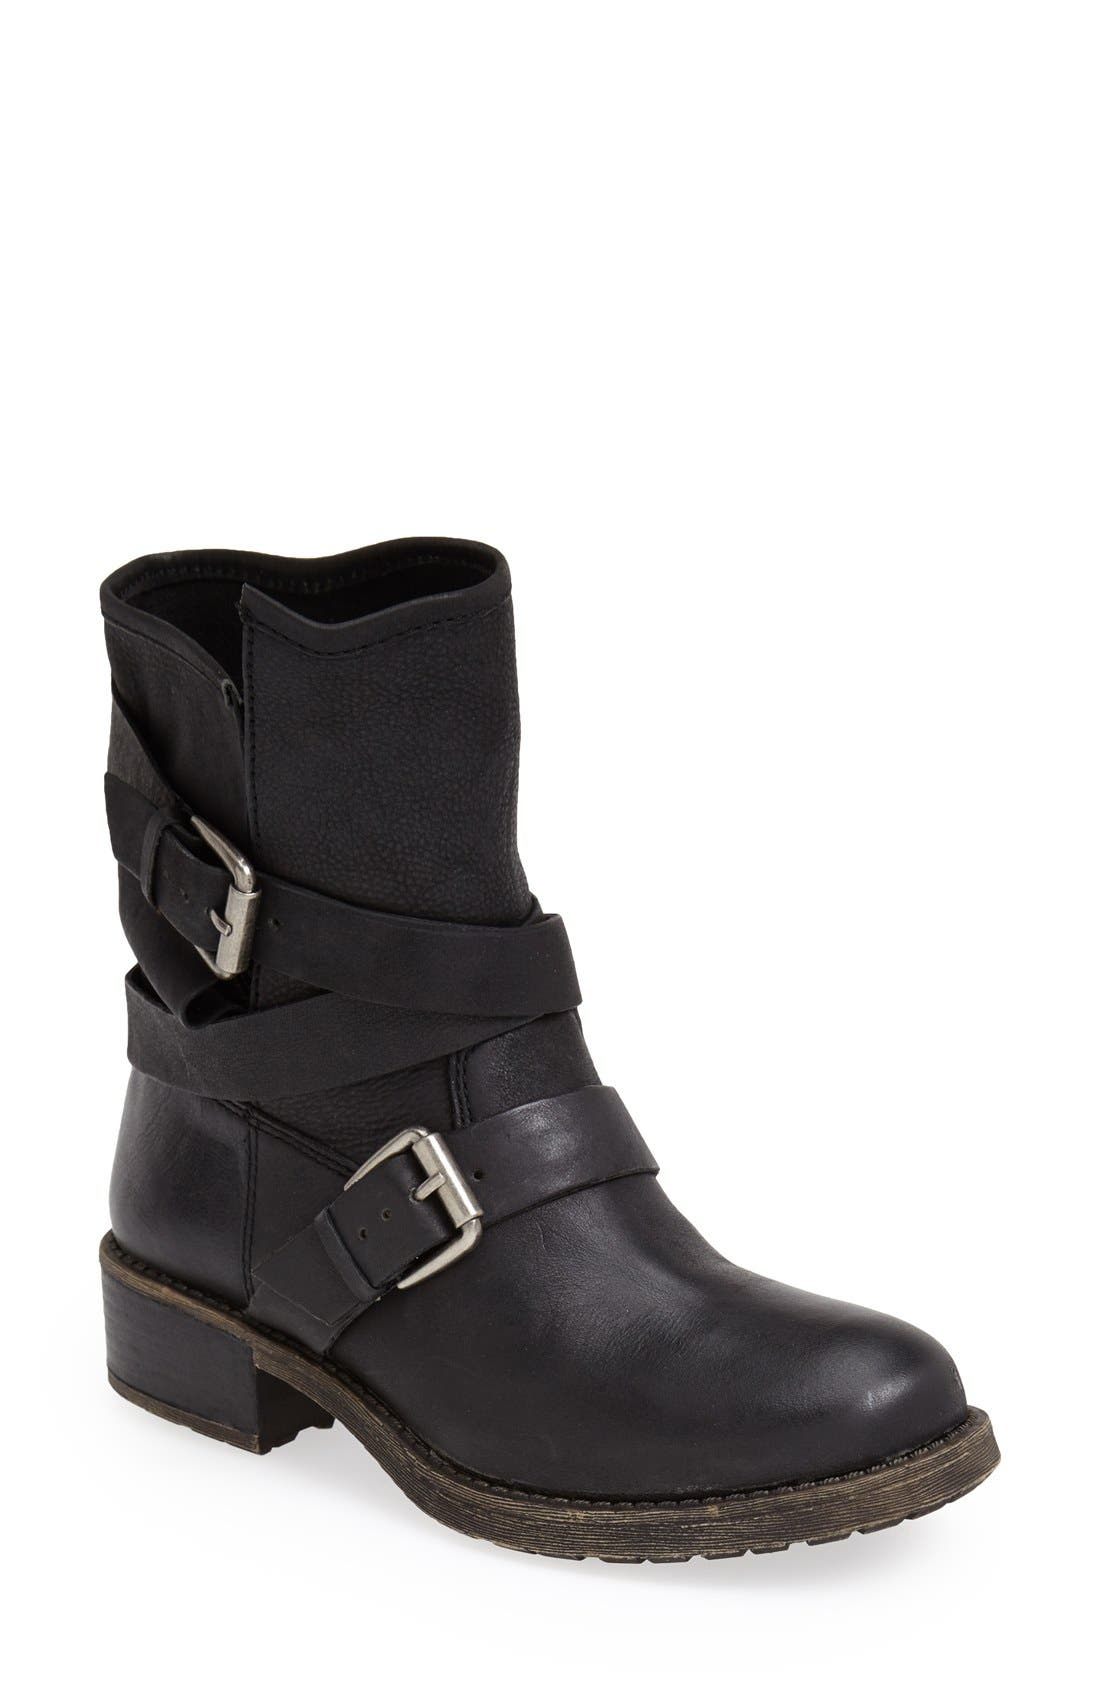 Alternate Image 1 Selected - Lucky Brand 'Dallis' Moto Boot (Women)